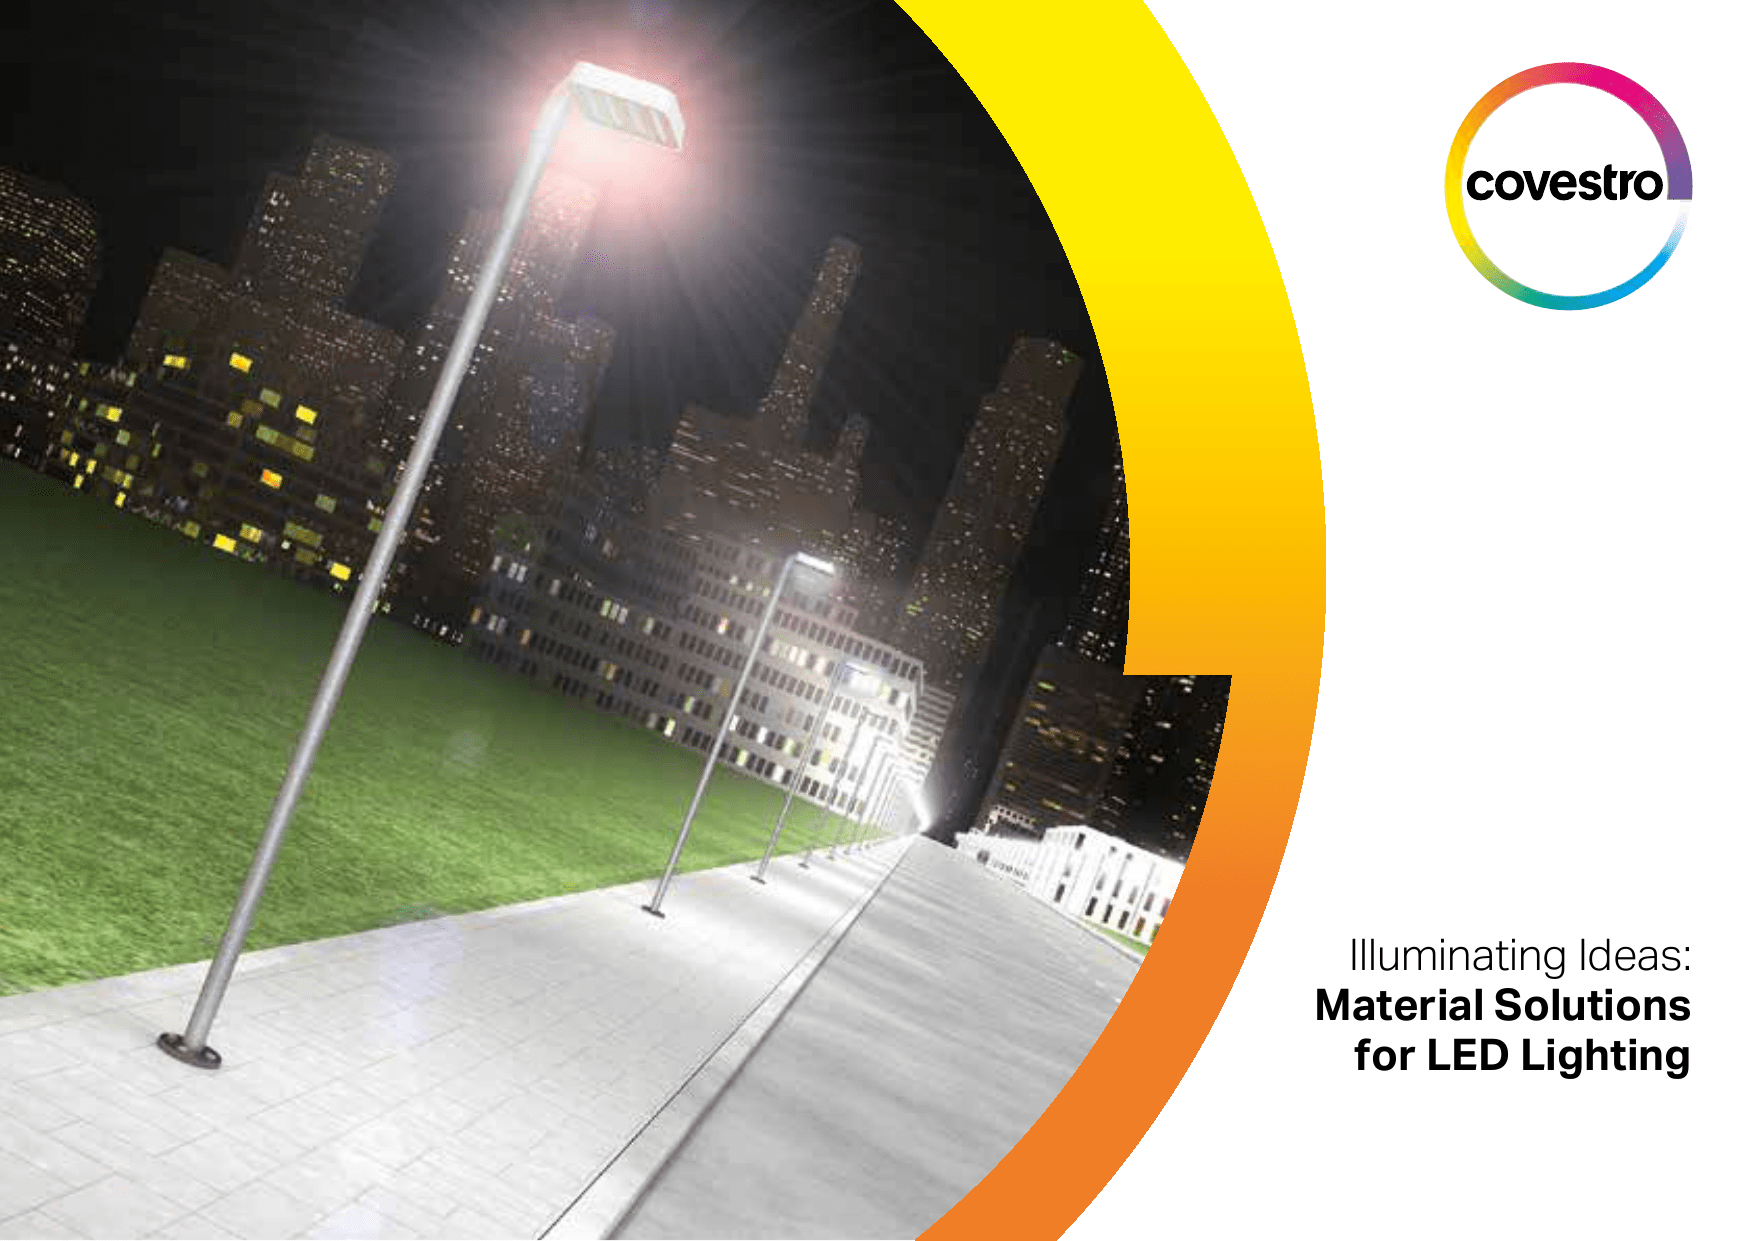 material solutions for led lighting at